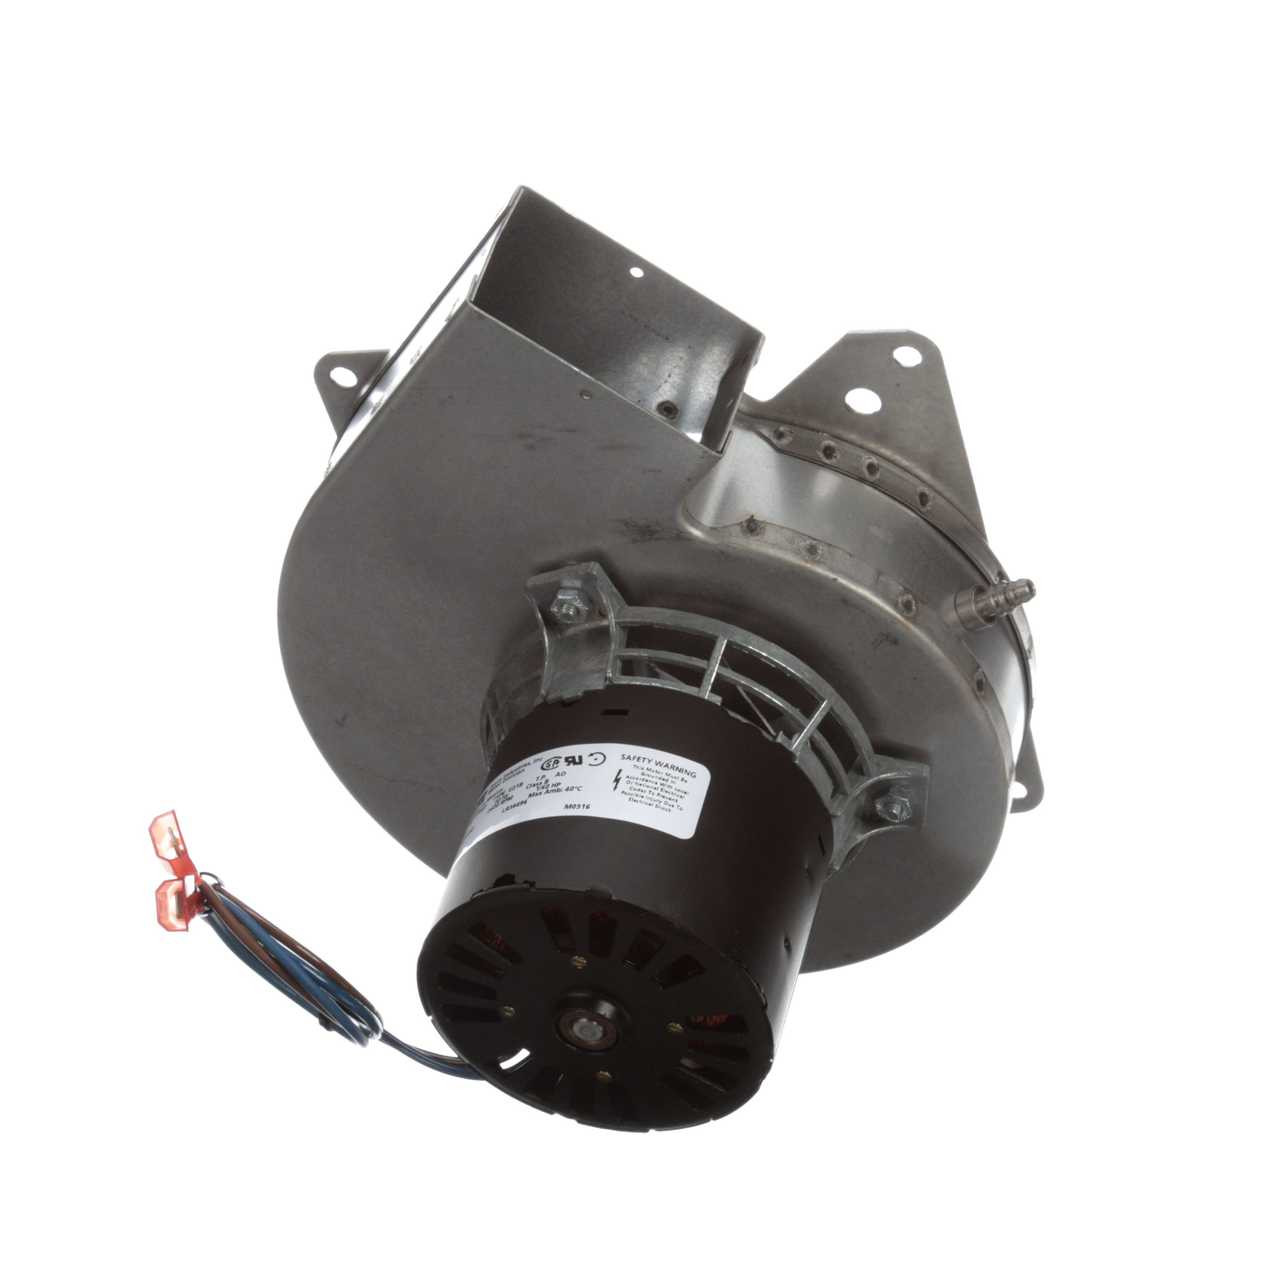 Goodman Furnace Draft Inducer Blower 220v  7021